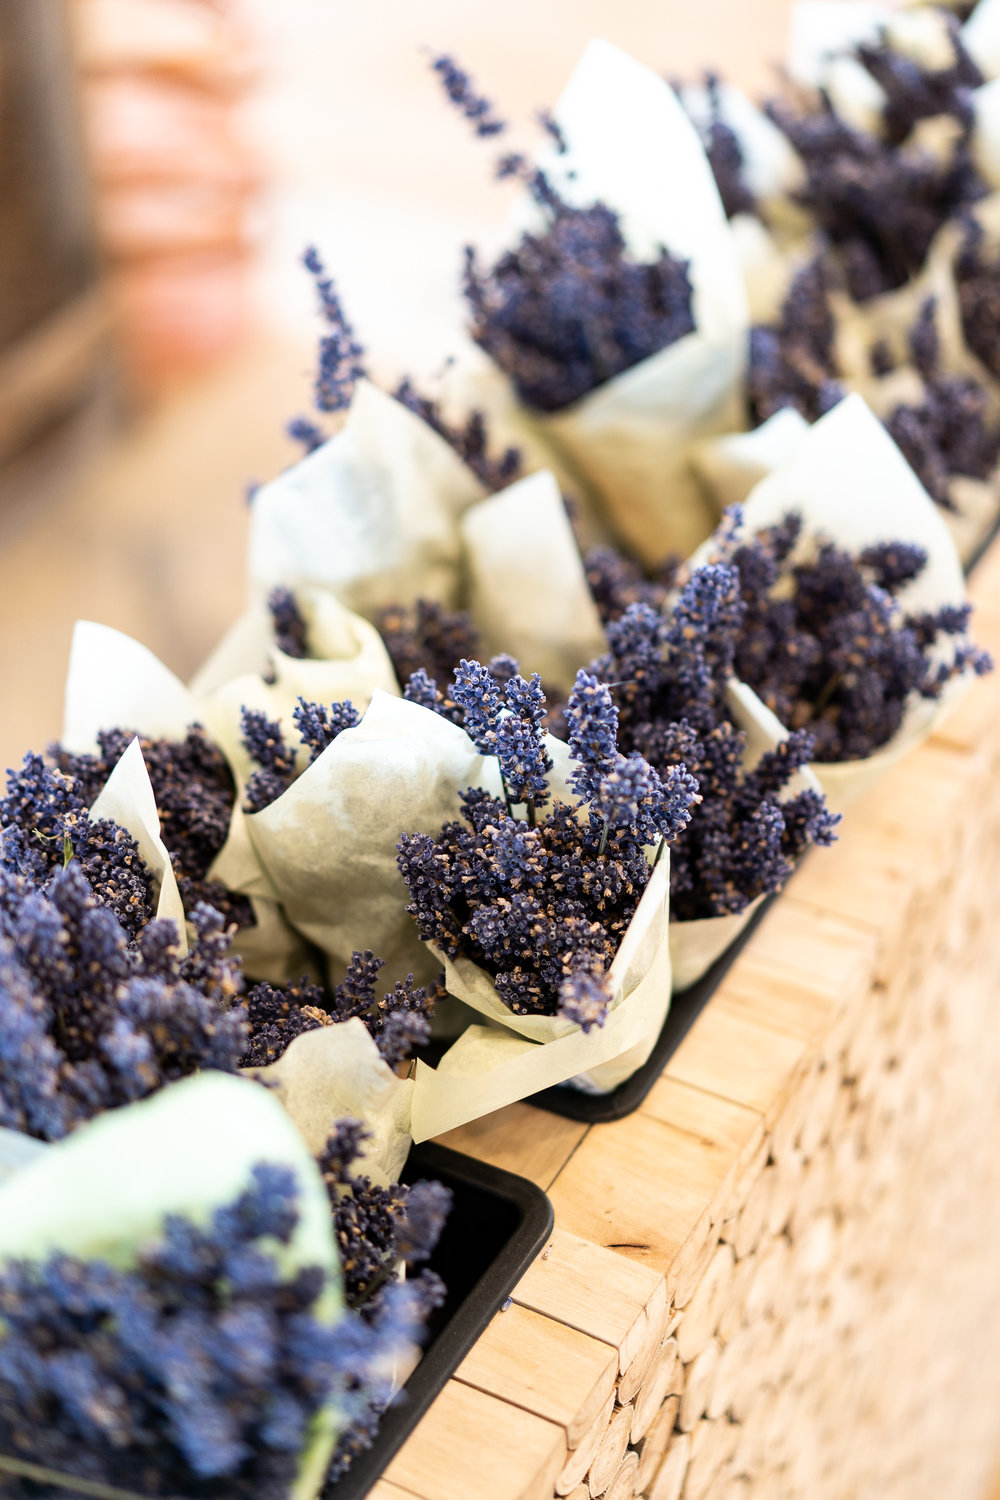 Fresh lavender bushels you can buy to treat yourself.